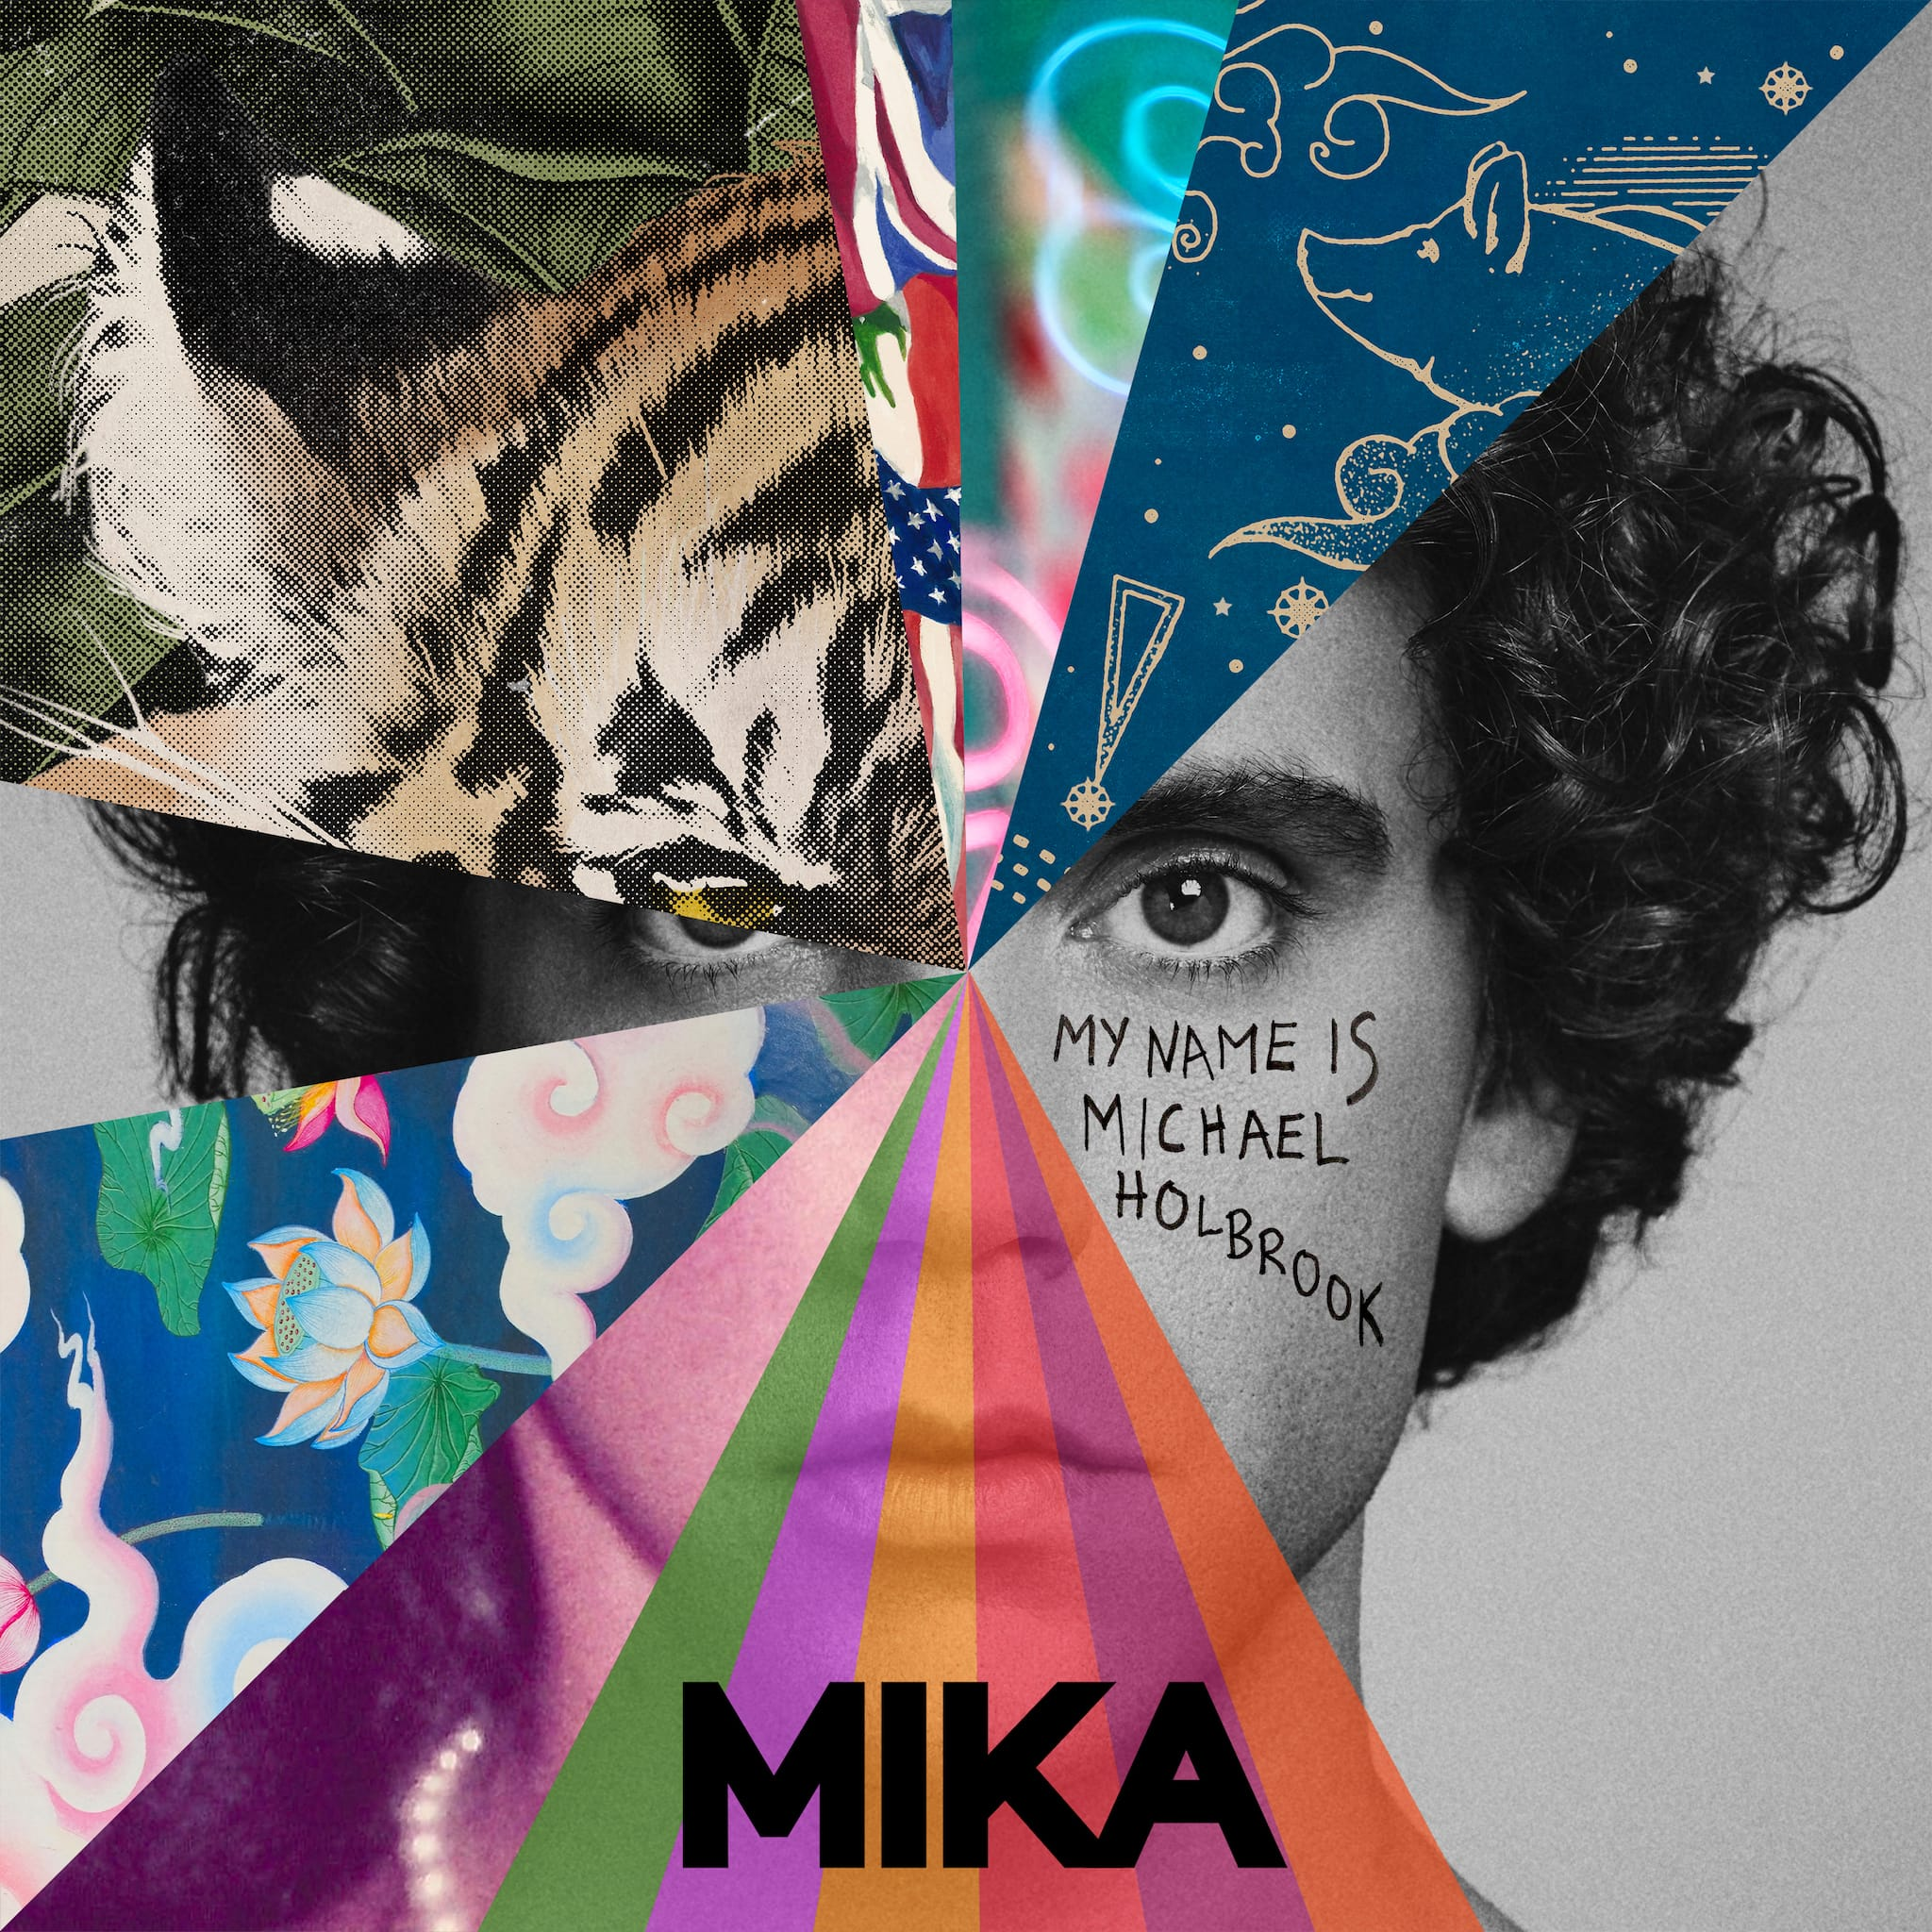 Mika image cover pochette album My Name Is Michael Holbrook musique